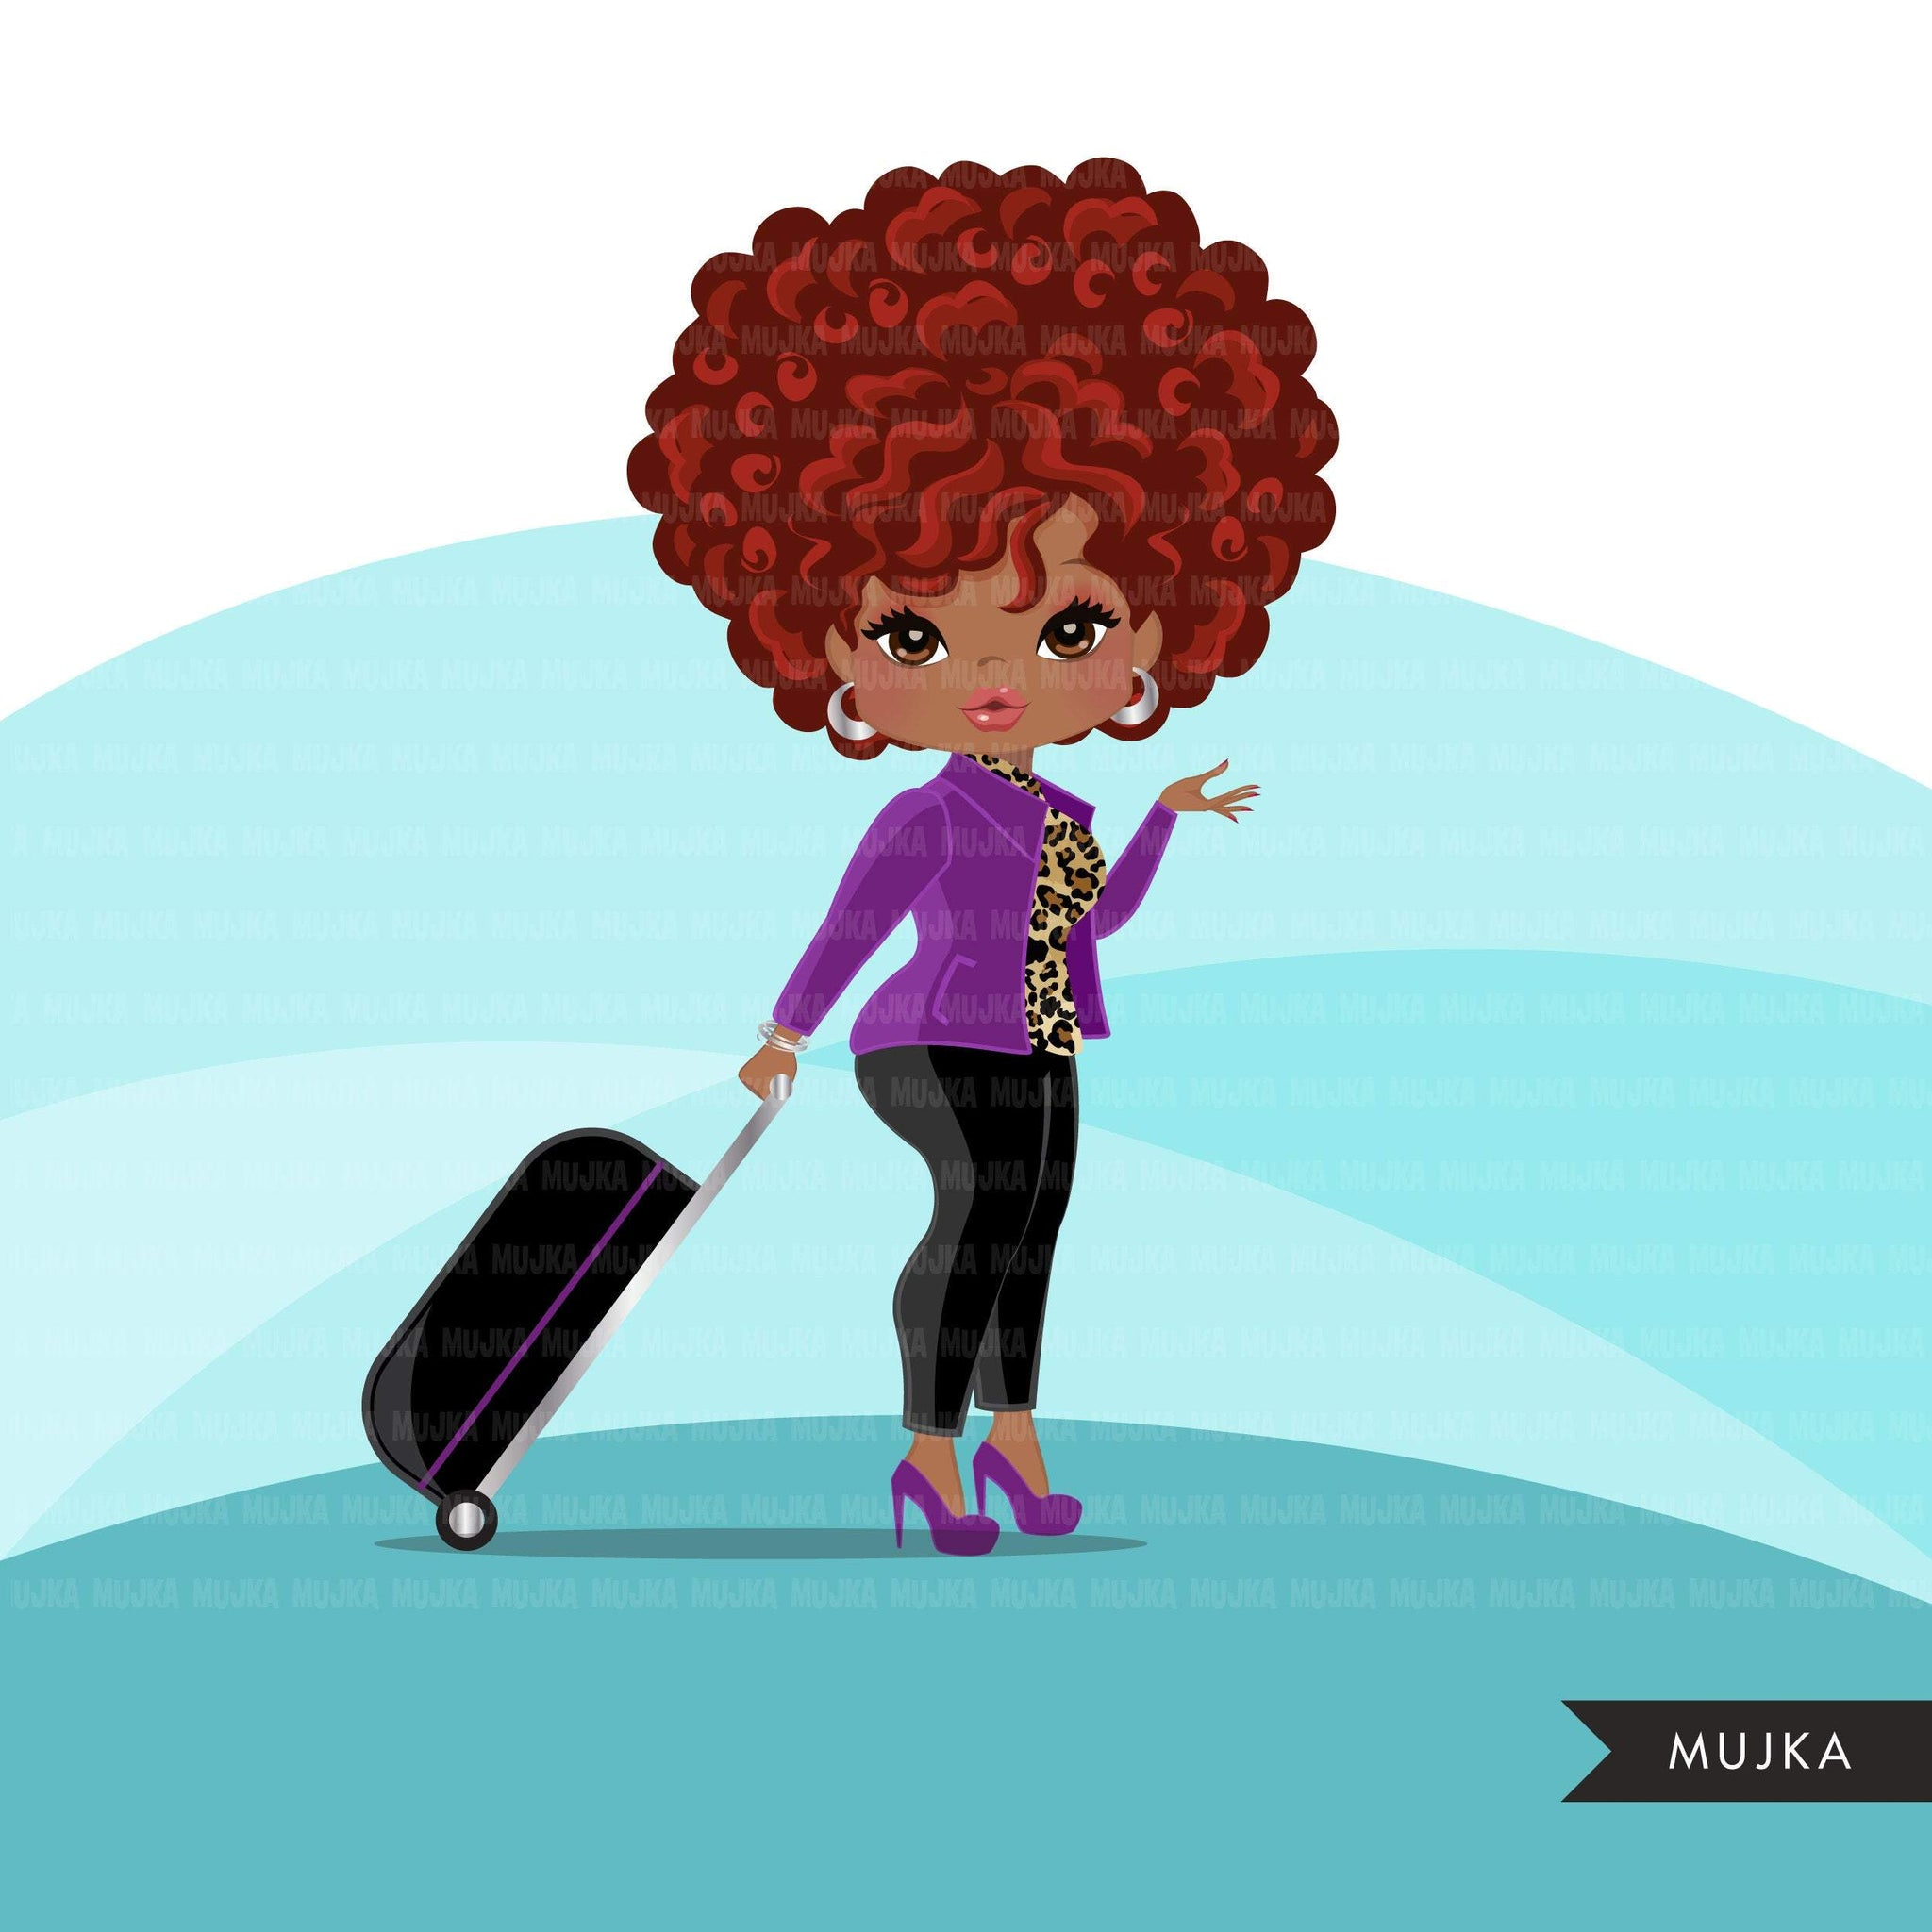 Travelling black woman clipart avatar with suitcase, print and cut, shop logo boss afro girl clip art purple leopard skin graphics